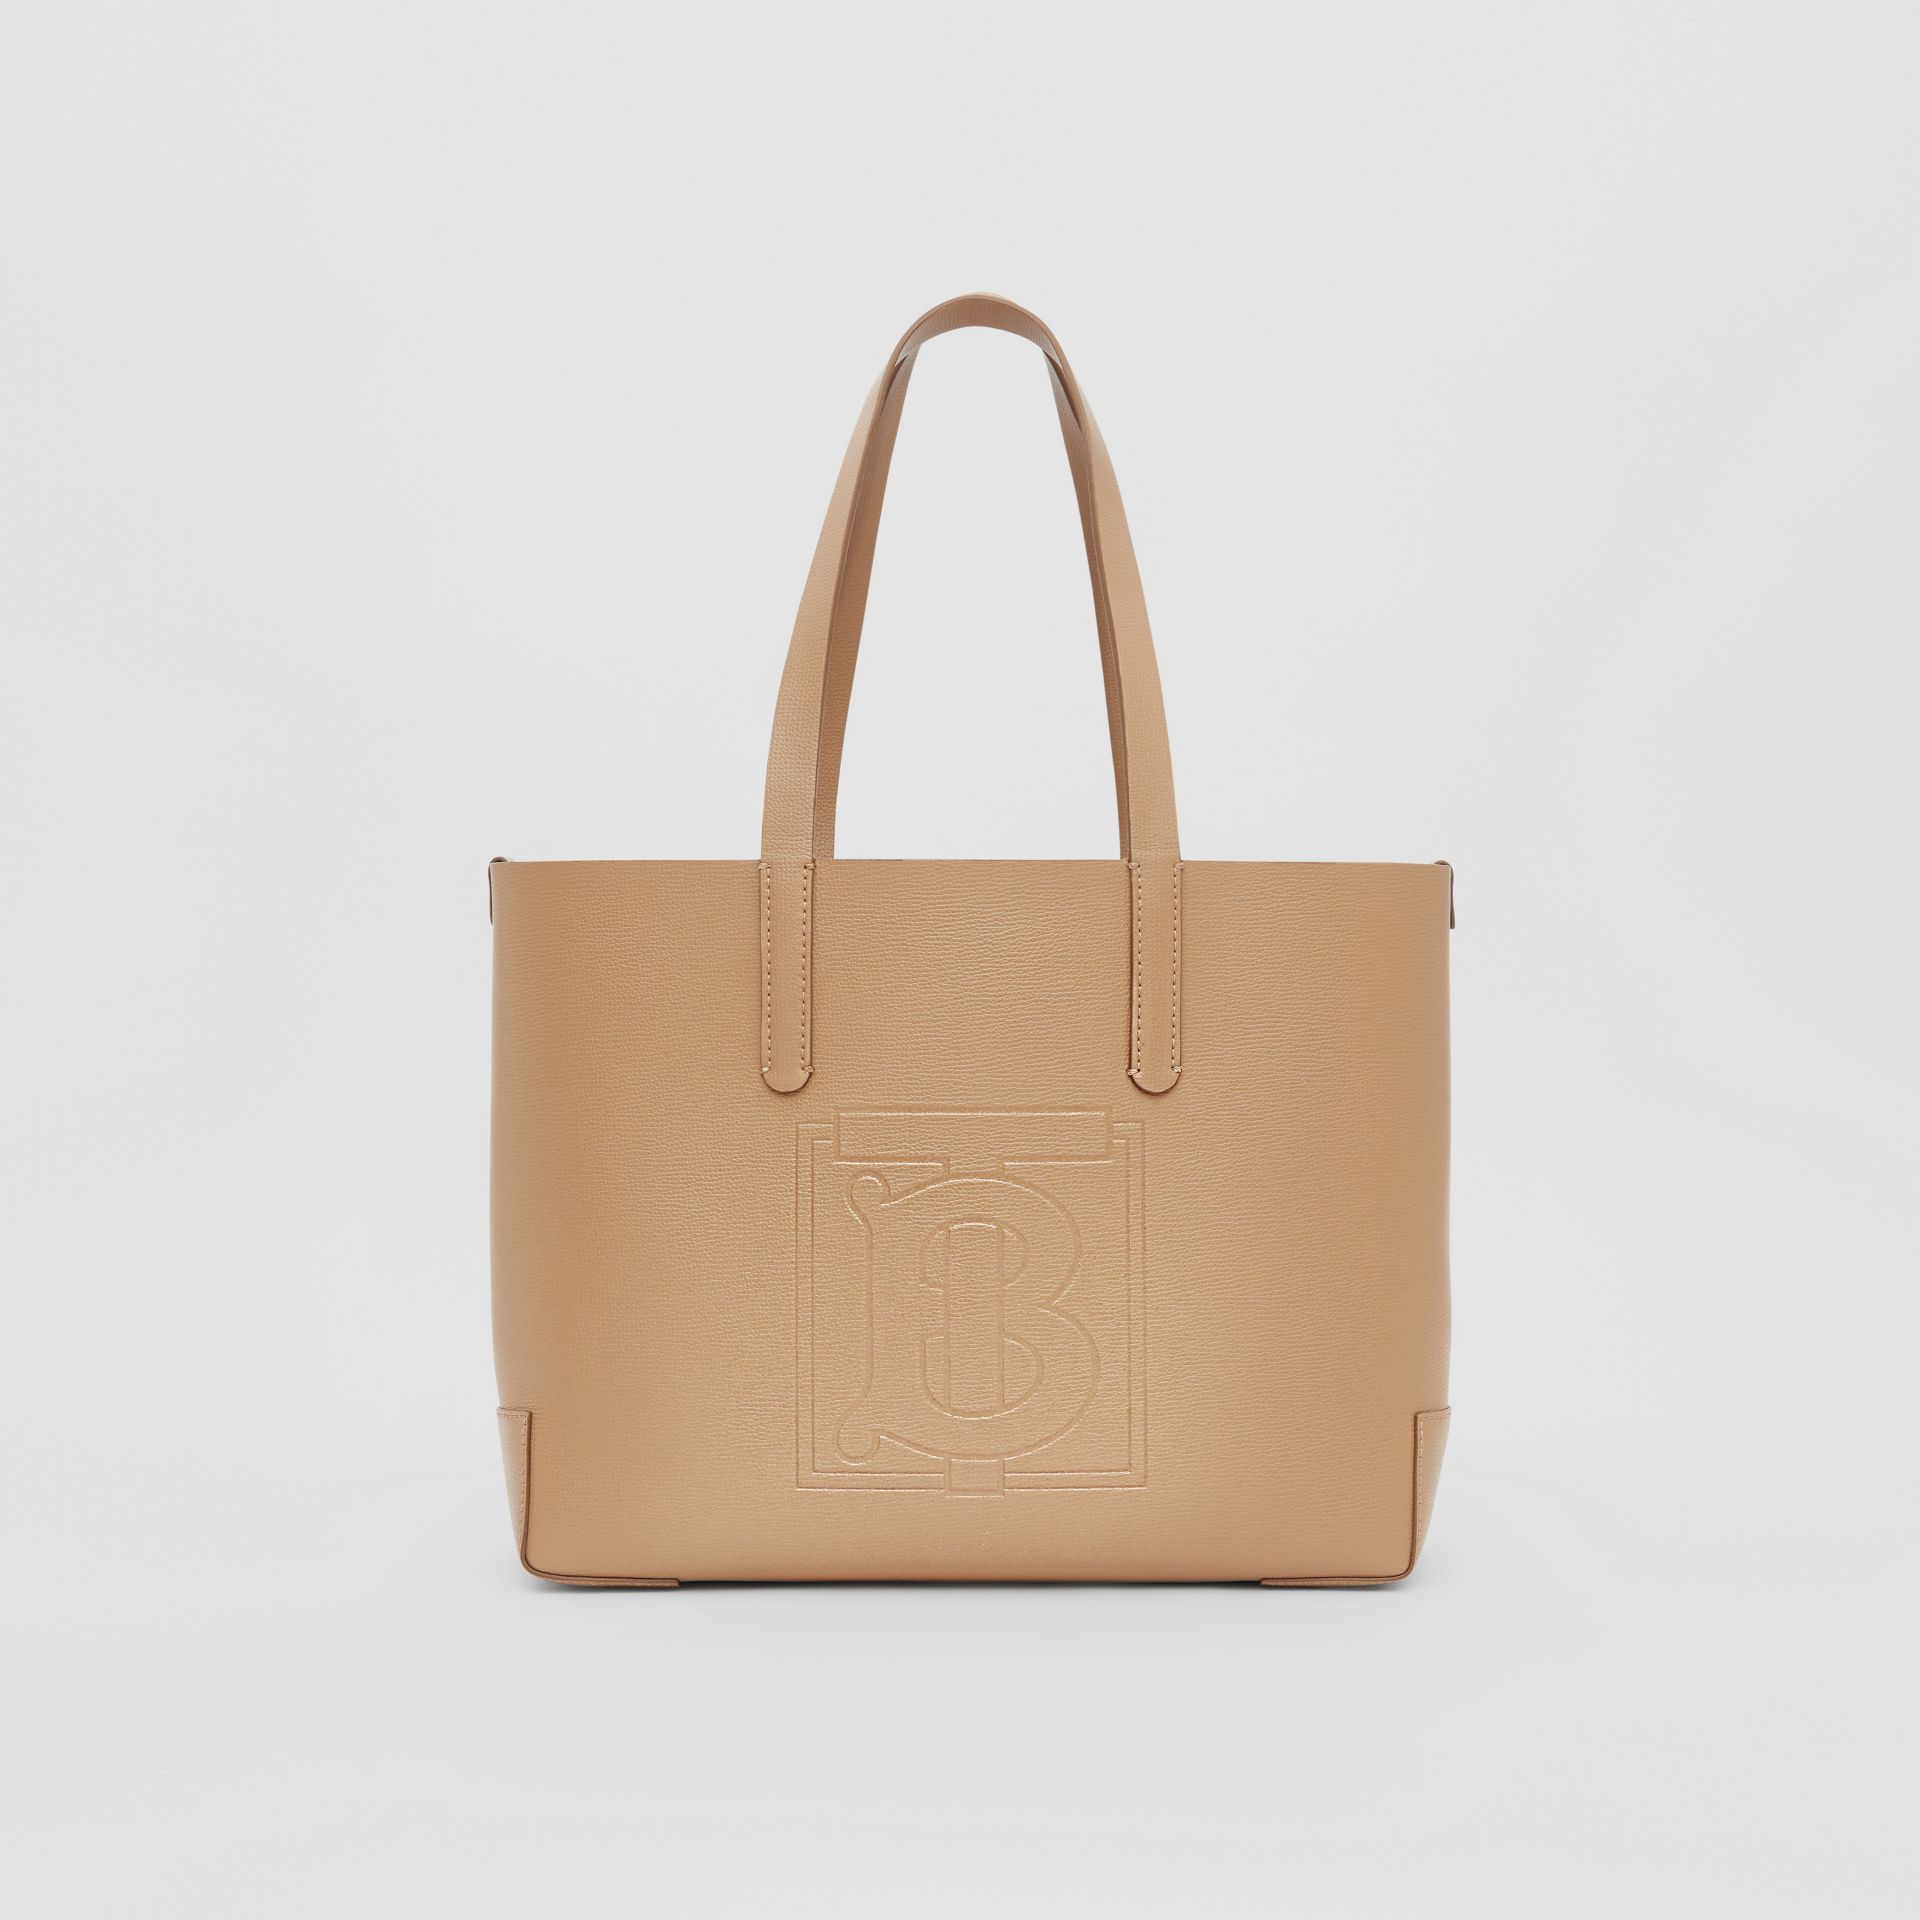 Embossed Monogram Motif Leather Tote in Camel - Women | Burberry - gallery image 0